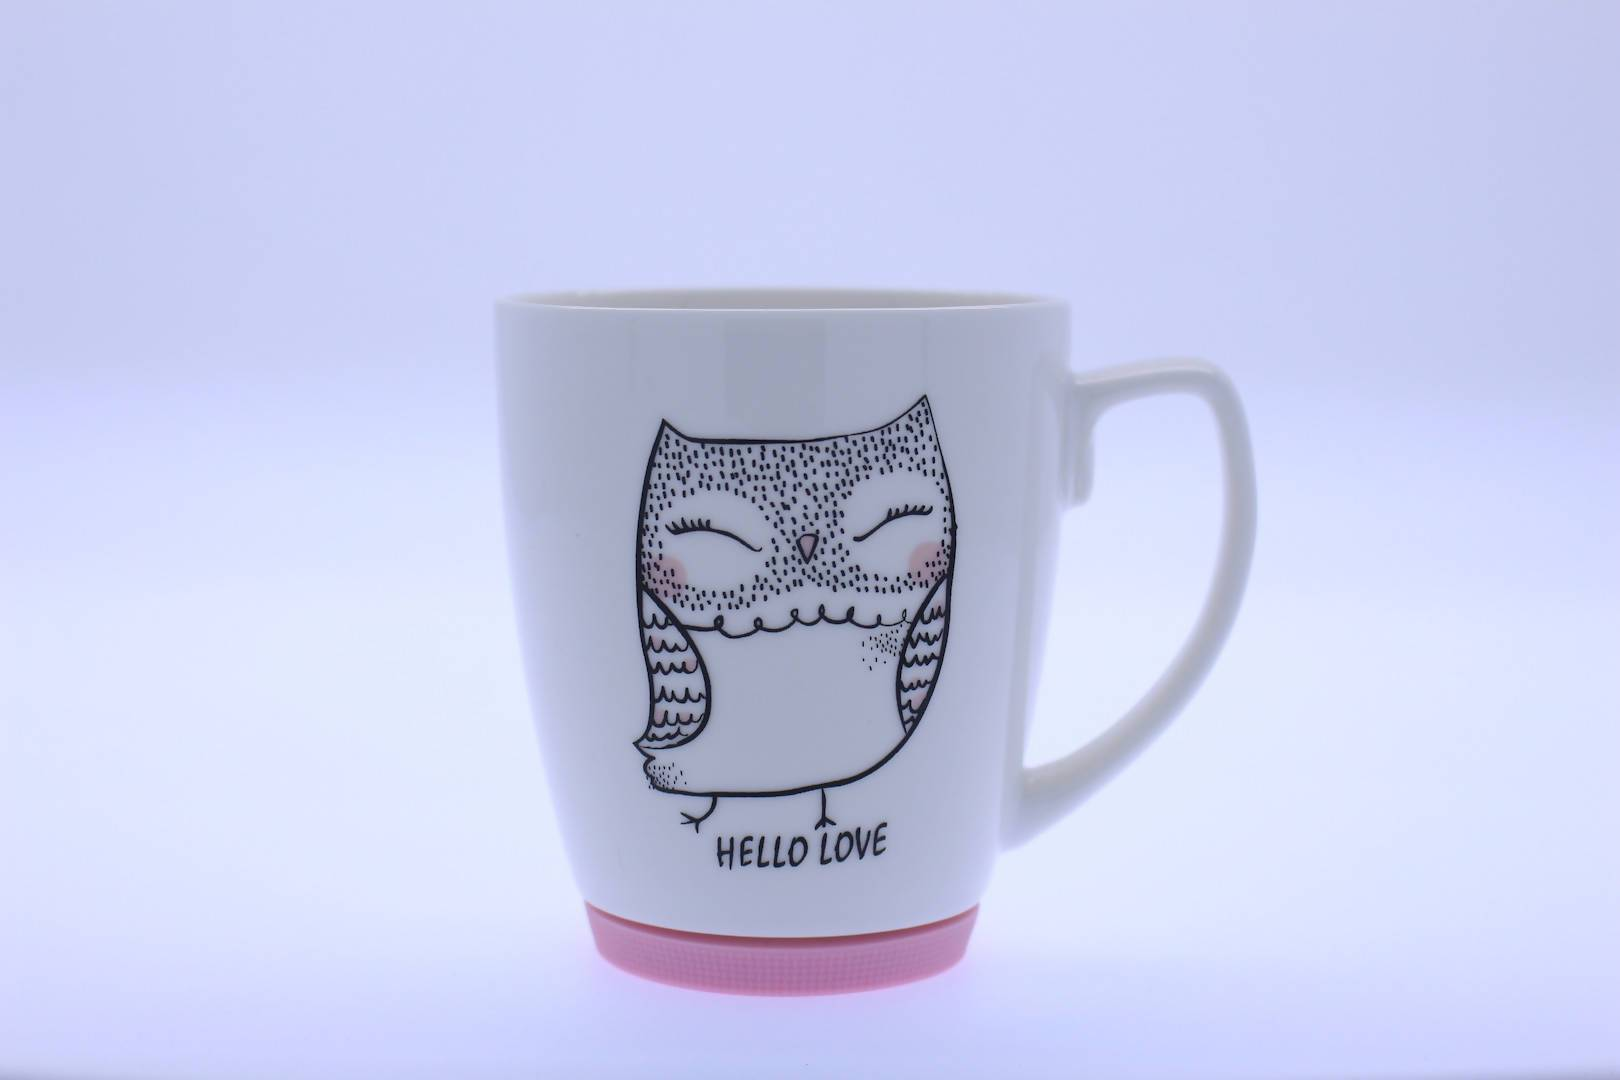 Royal Spade Awesome Mug - Hello Love - Mugs - The Planet Collection - Naiise